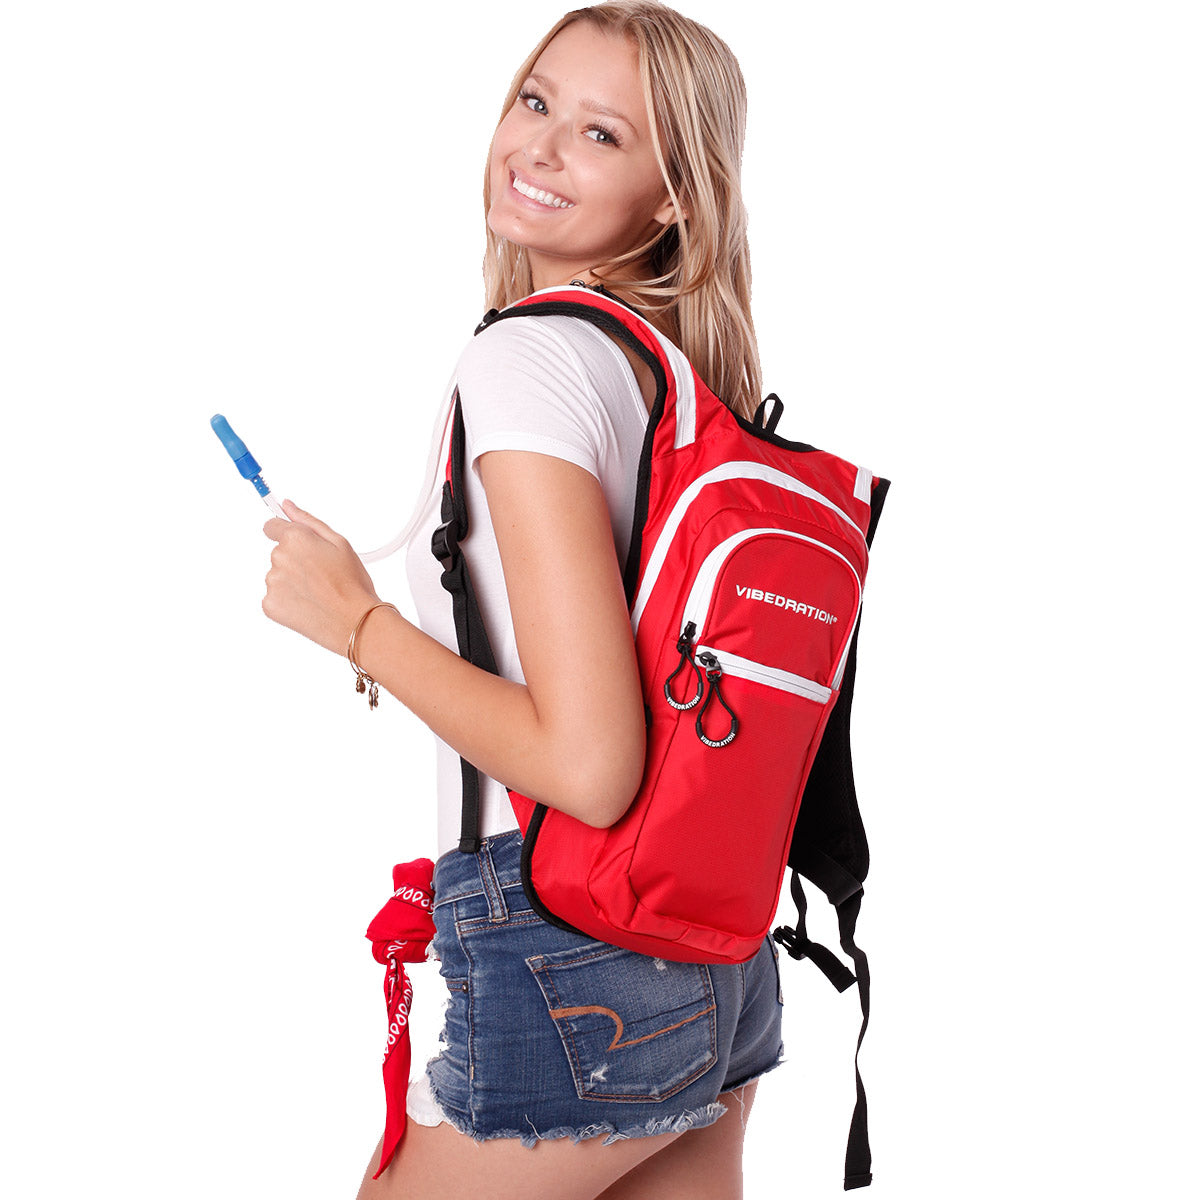 Side view of female wearing red and white hydration pack with three pockets.